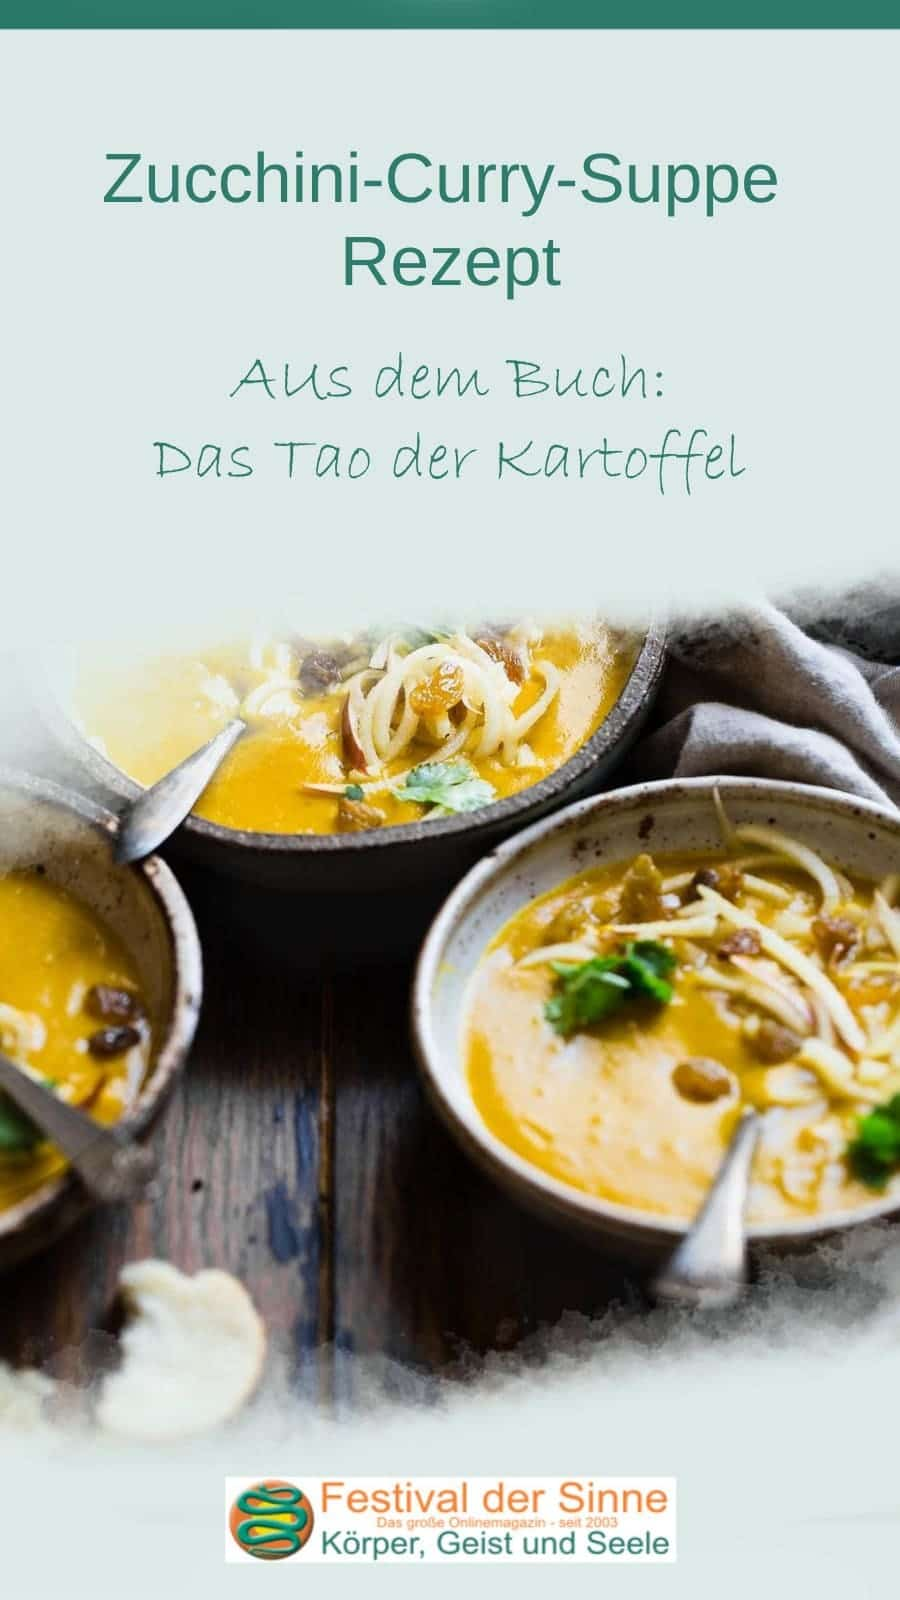 #Zucchini-Curry-Suppe #Rezept (Pin)